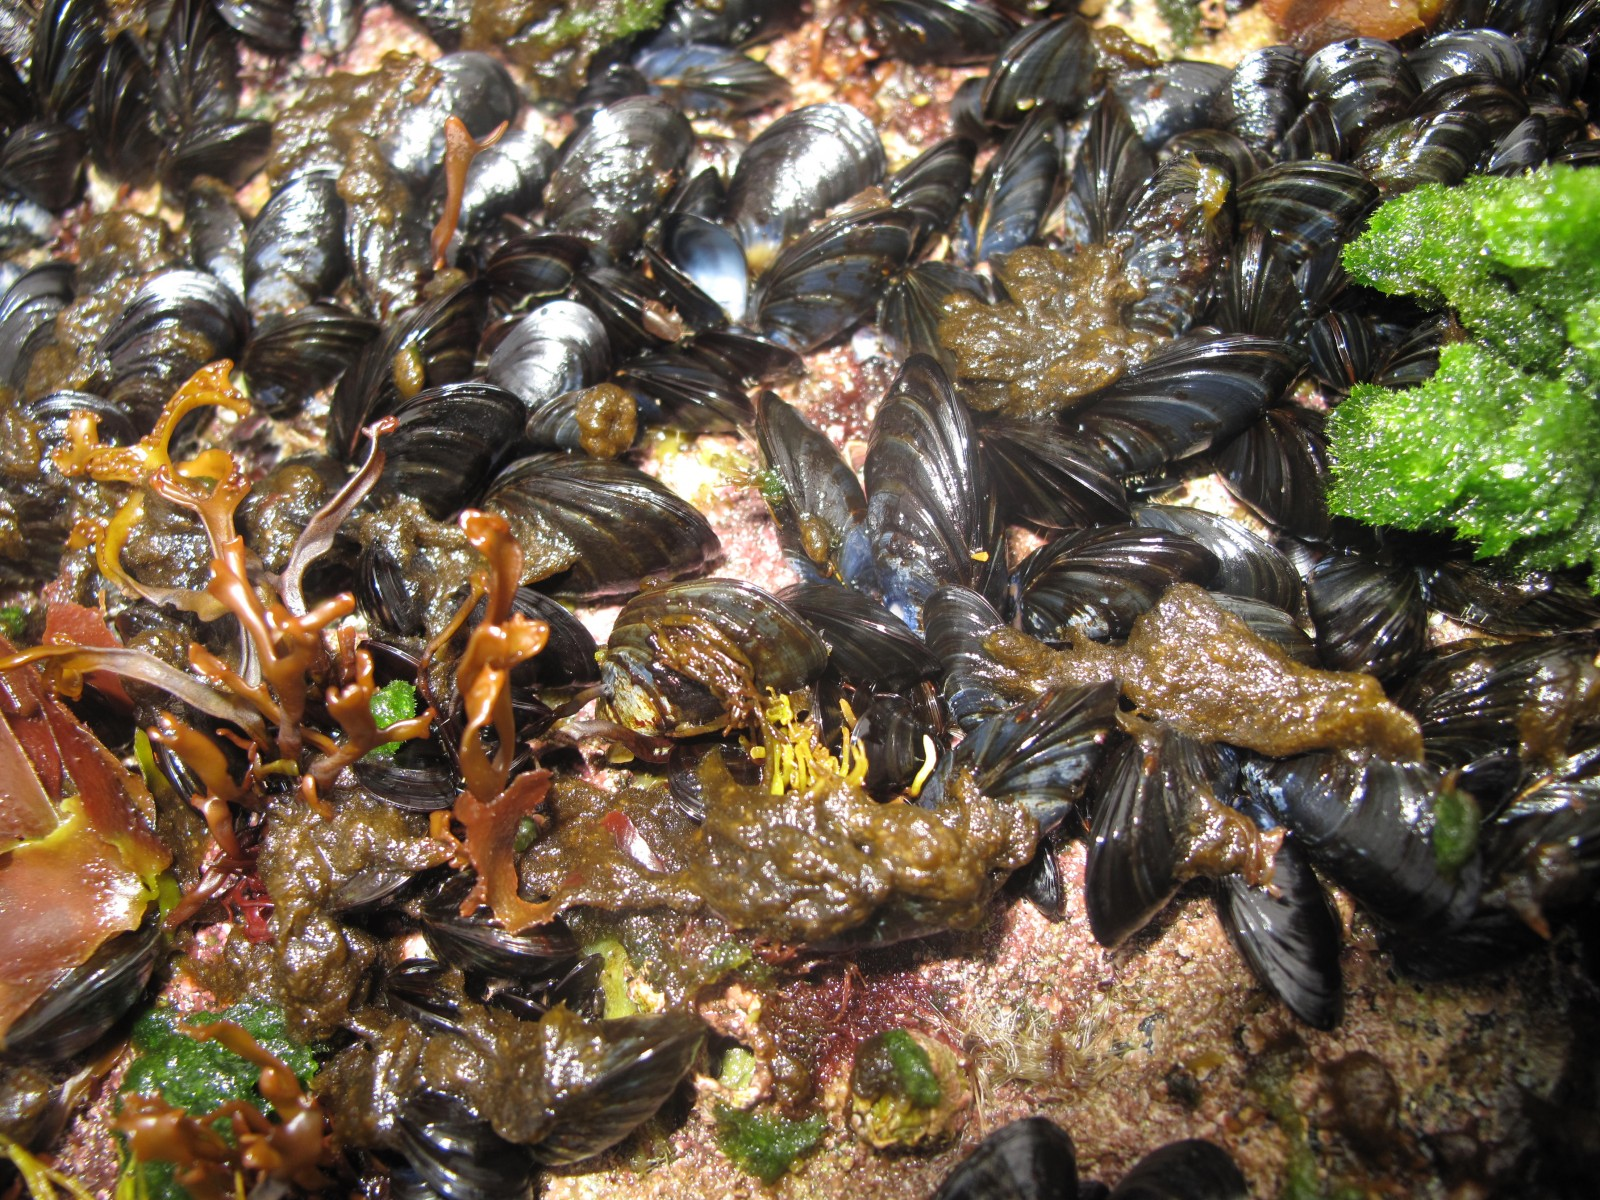 Blue mussels – we collected some of these and steamed them up for an appetizer